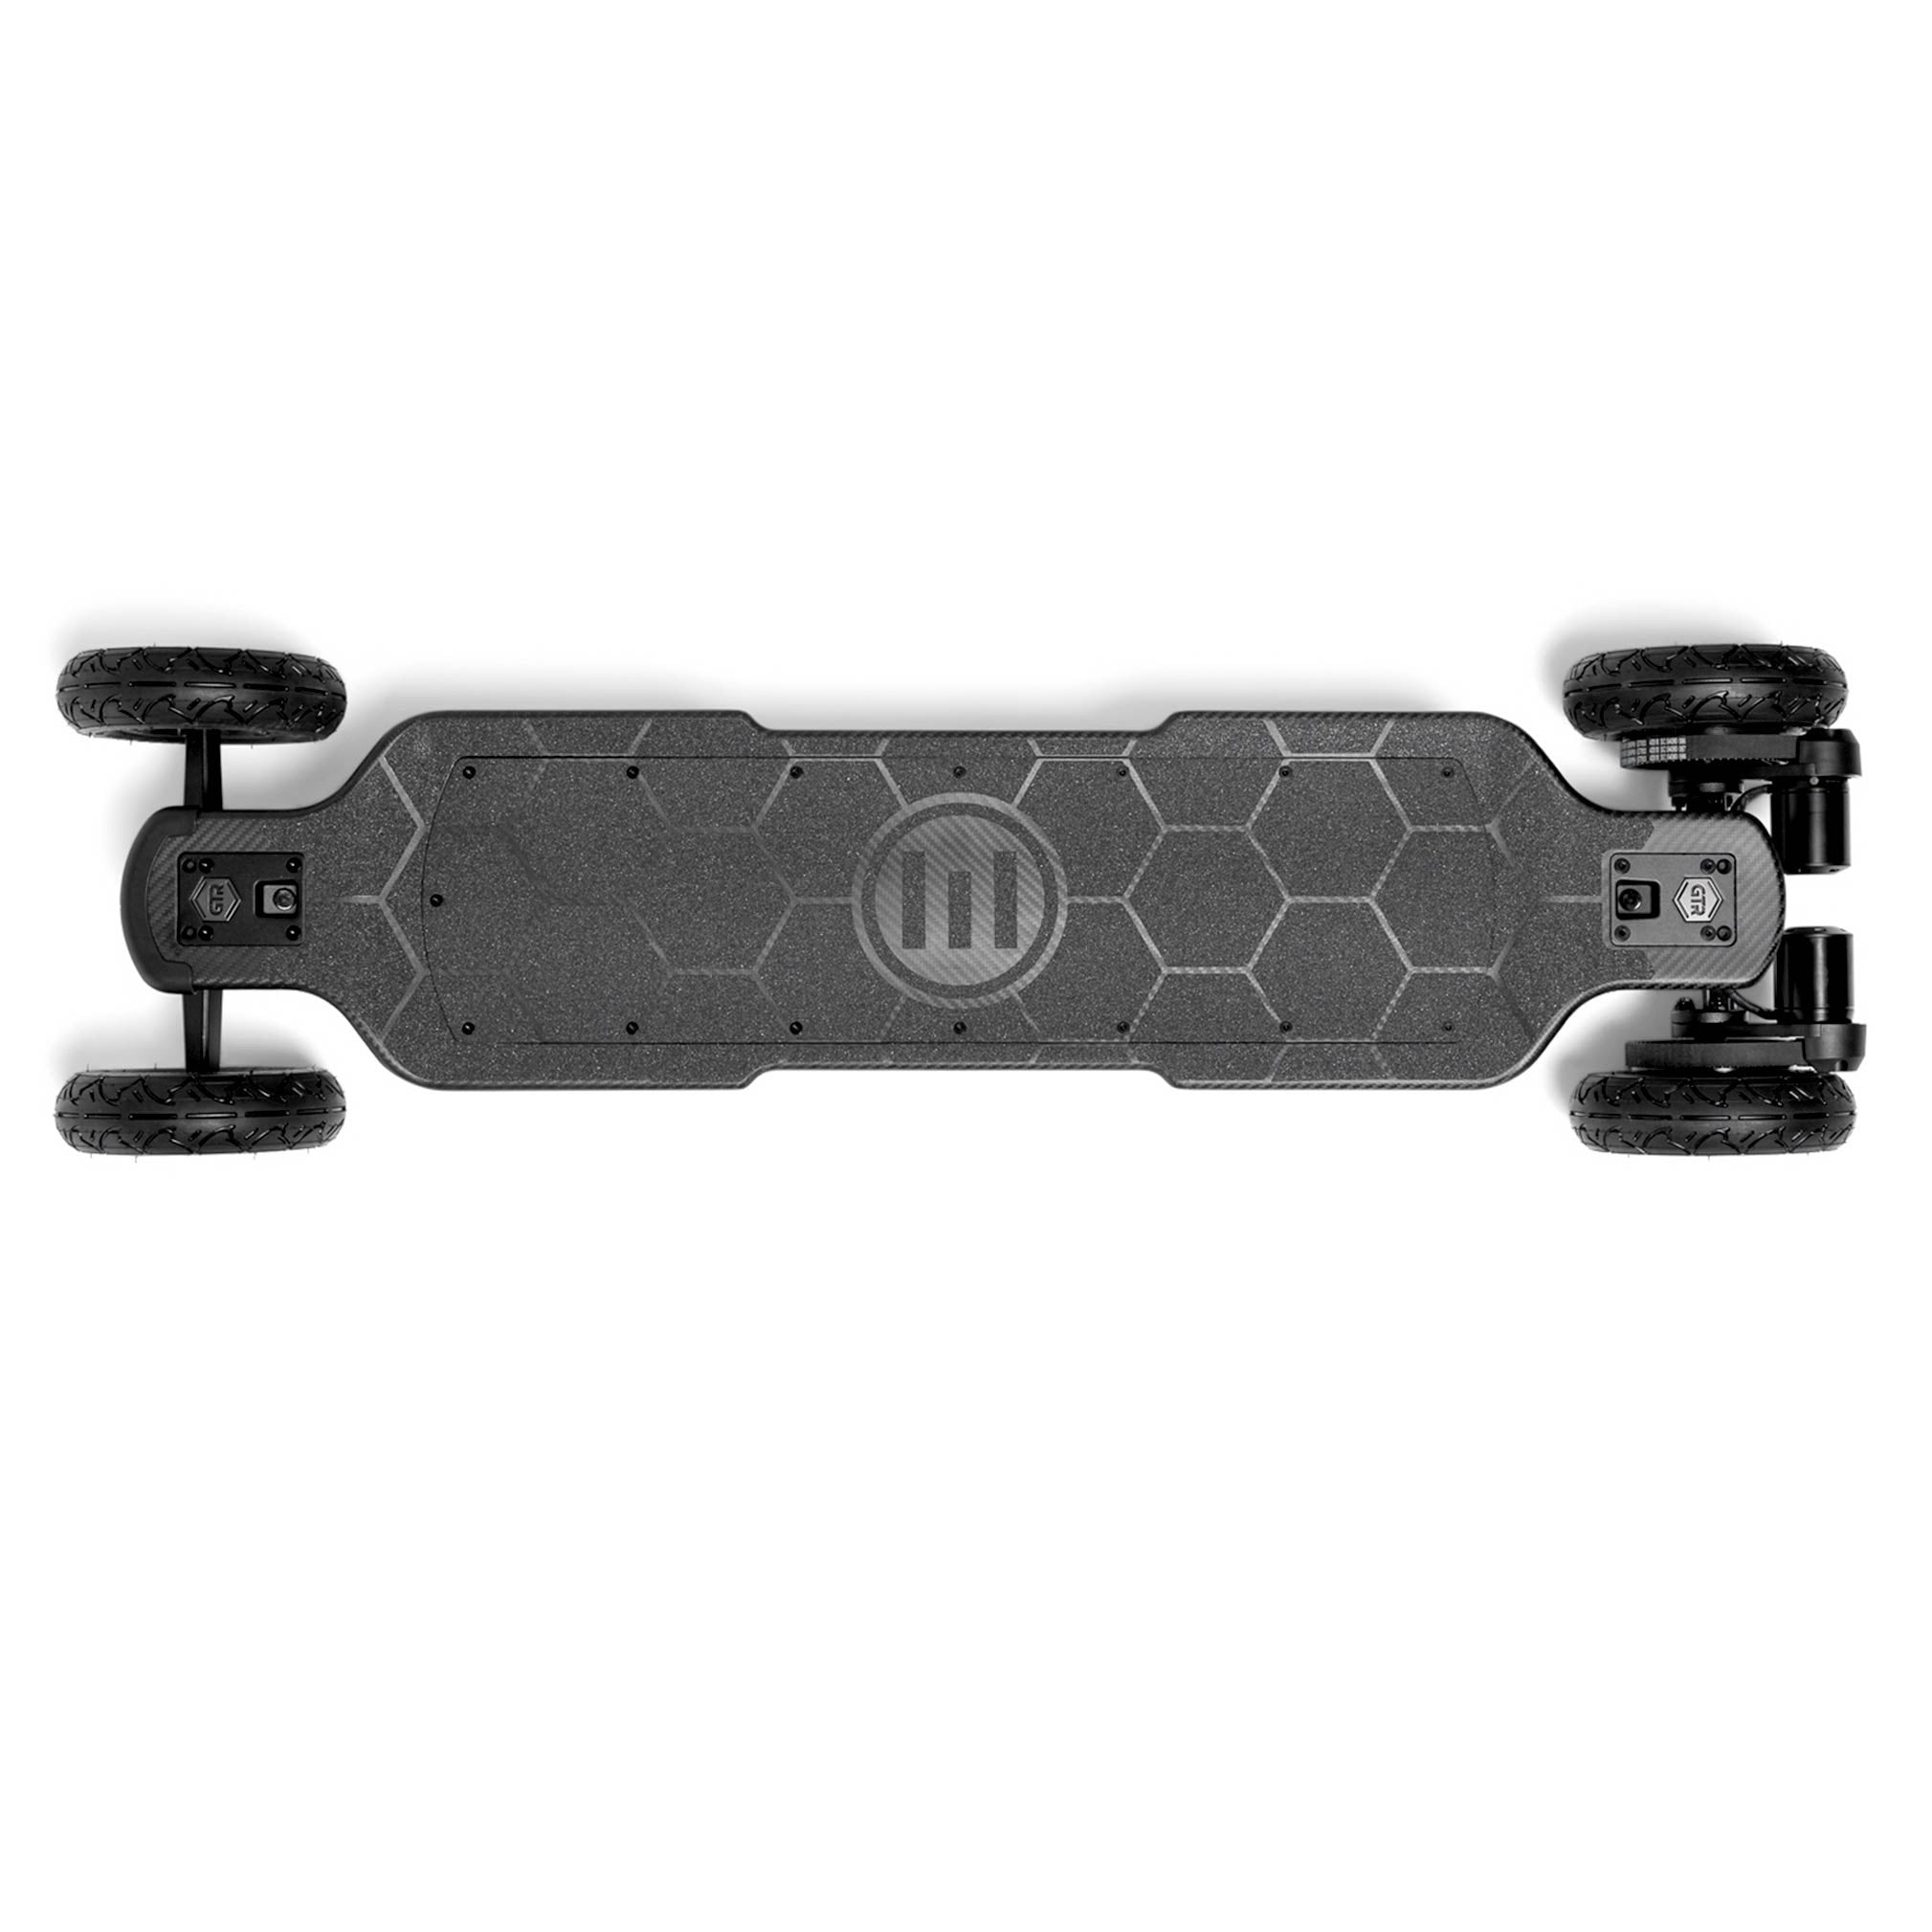 Evolve Skateboards Carbon GTR - All Terrain